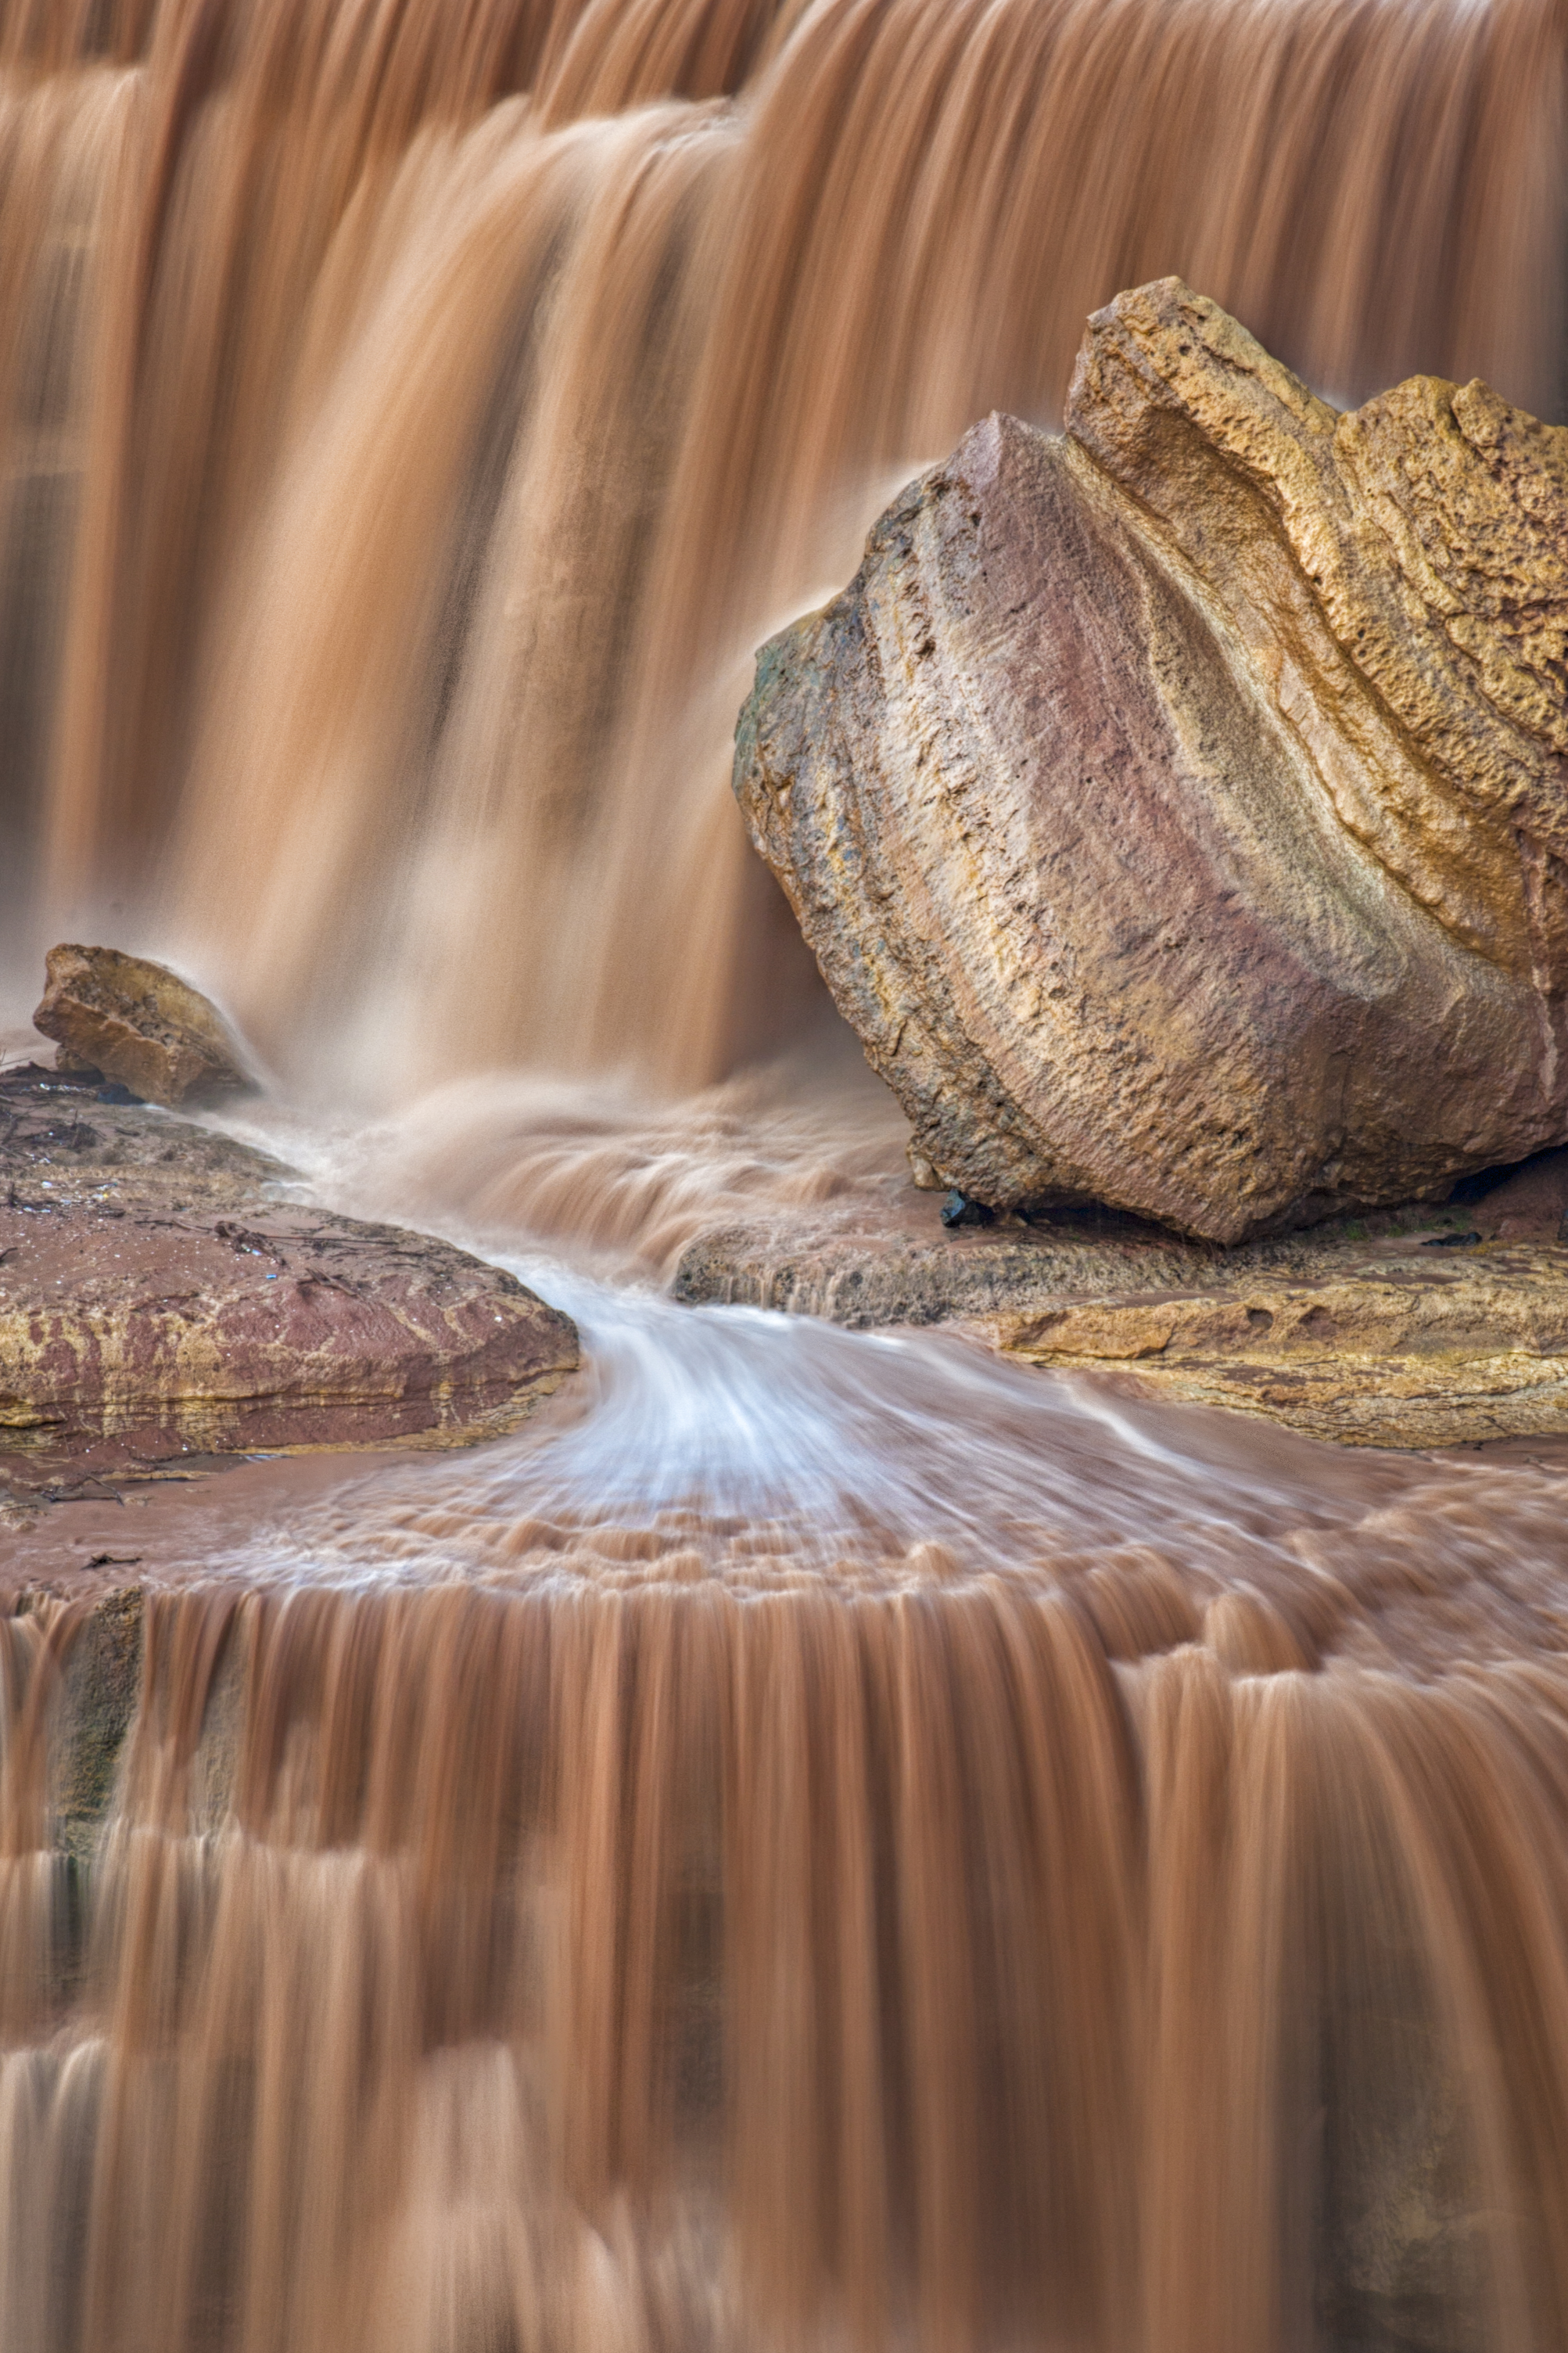 'Chocolate Falls' by Suzanne Mathia